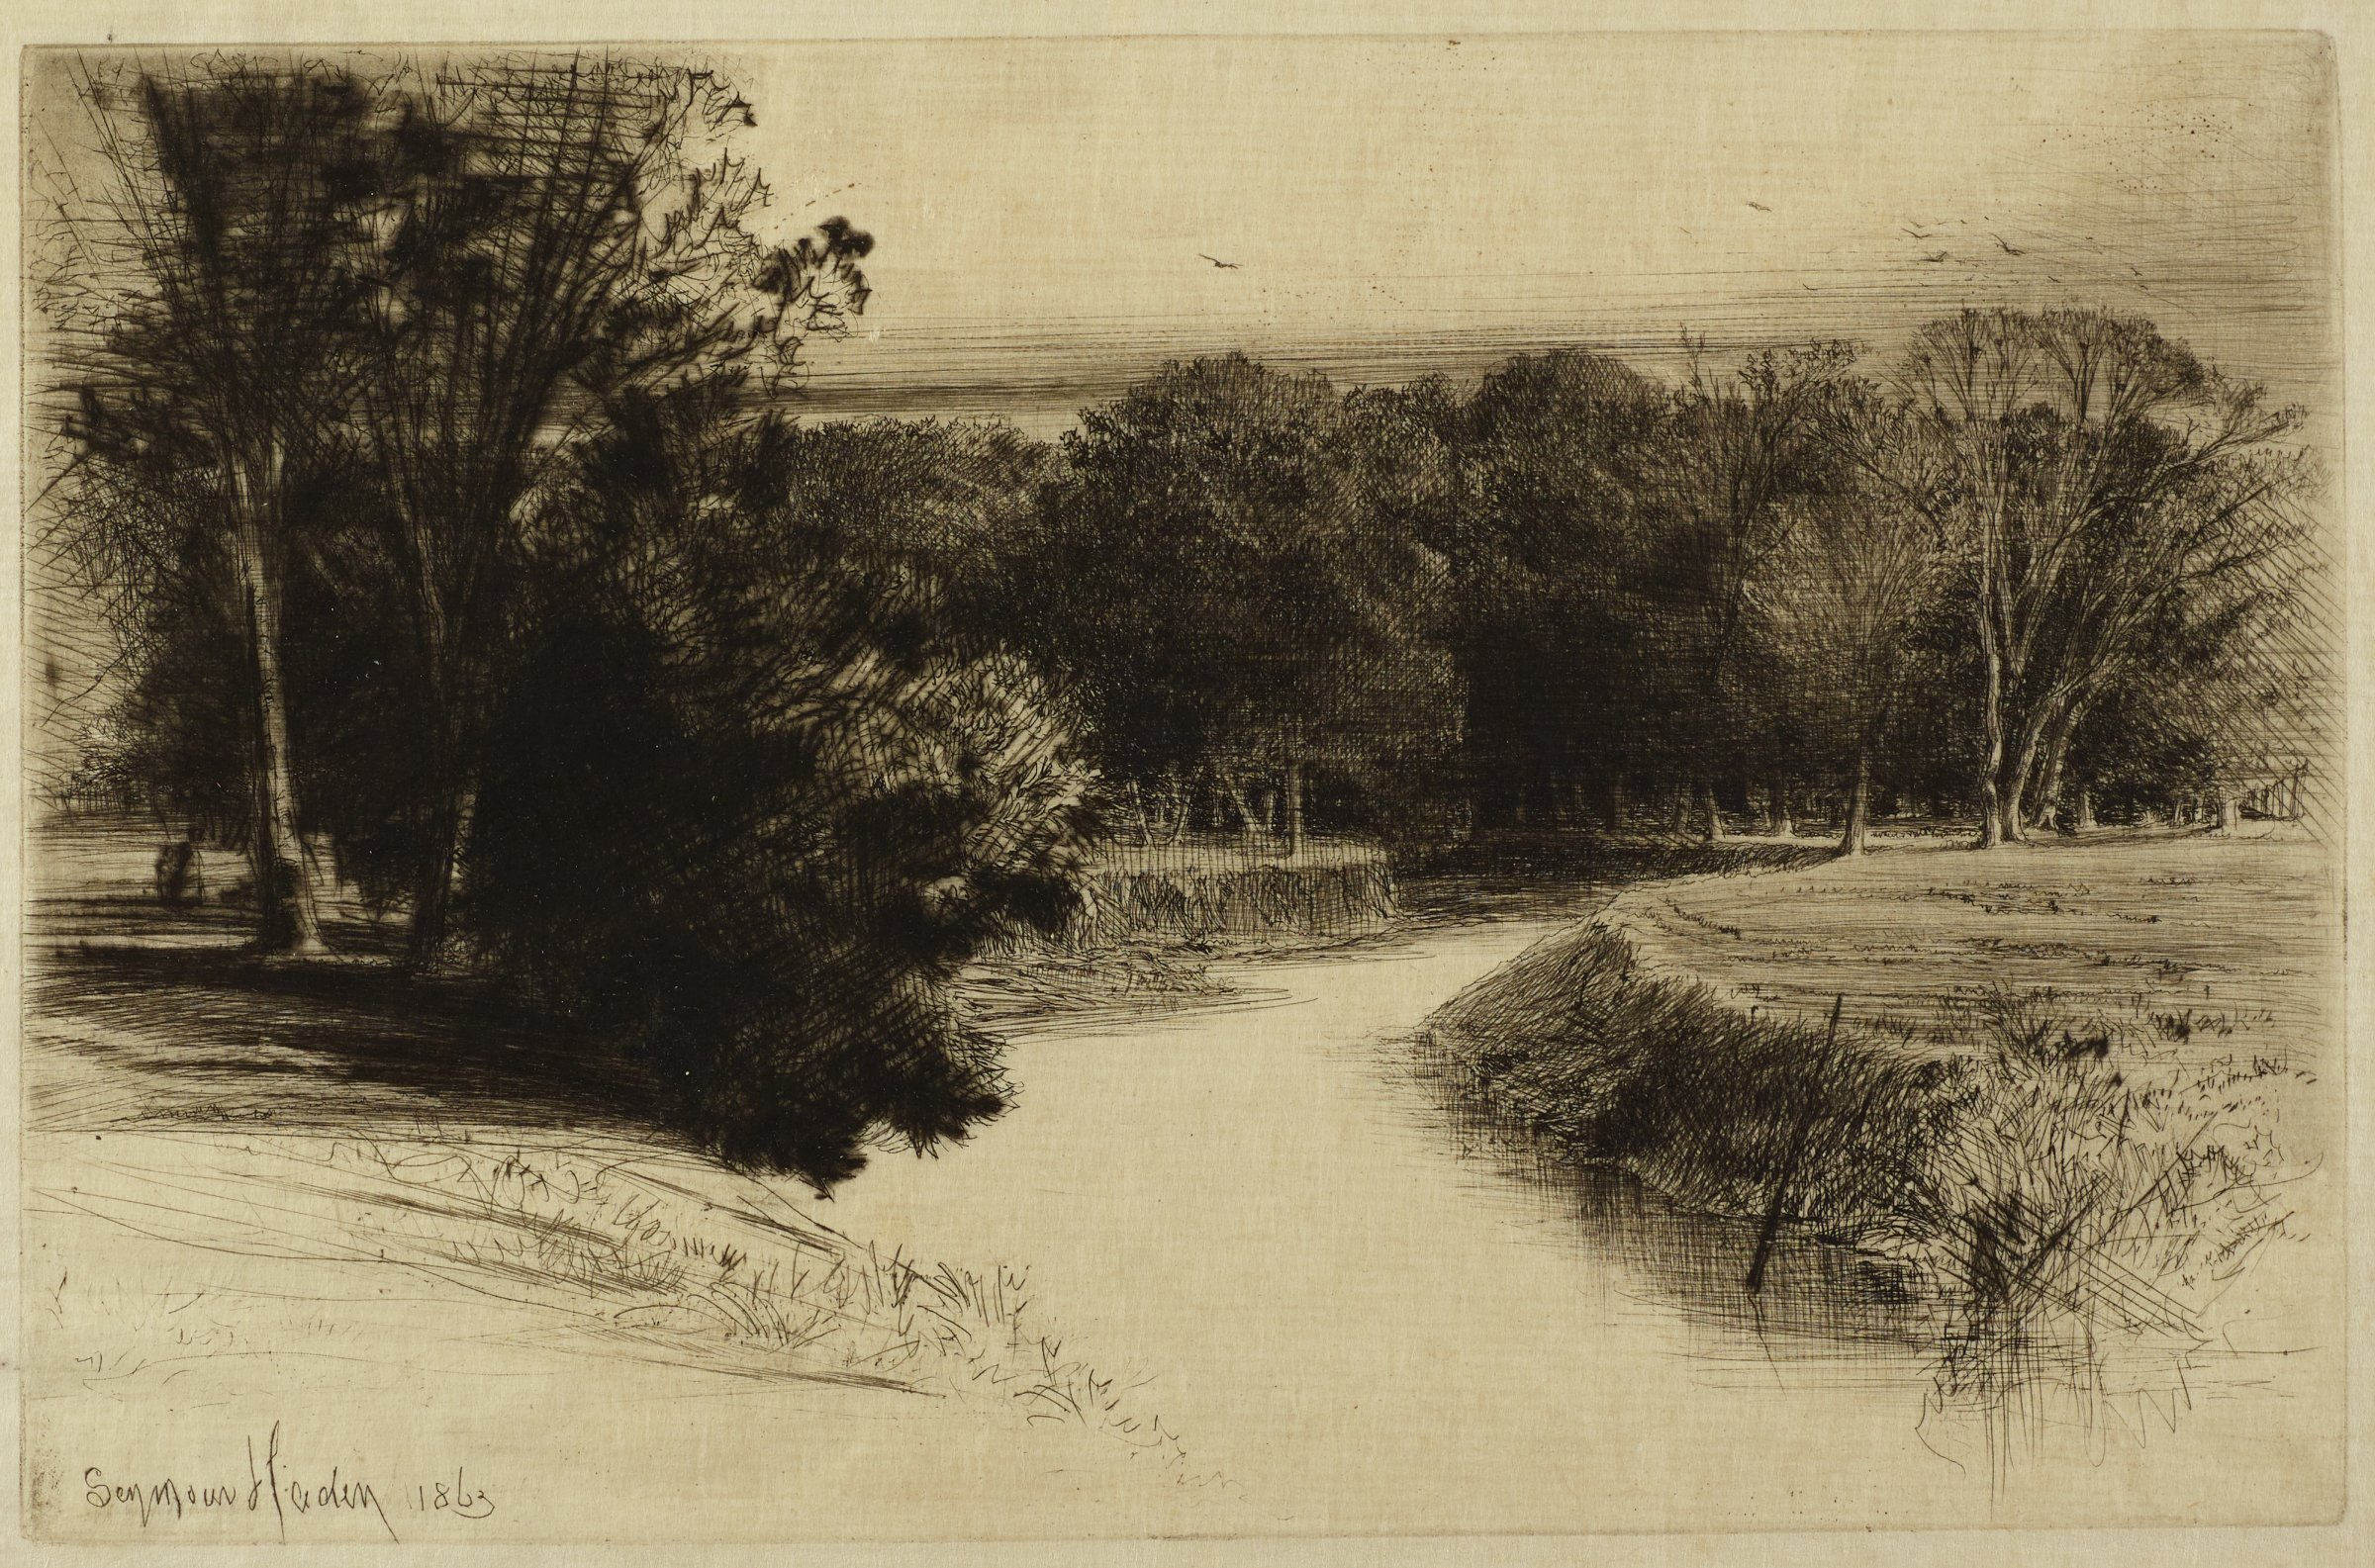 A creek passes through the middle of the composition. Trees and grassy fields populate both sides of the bank.